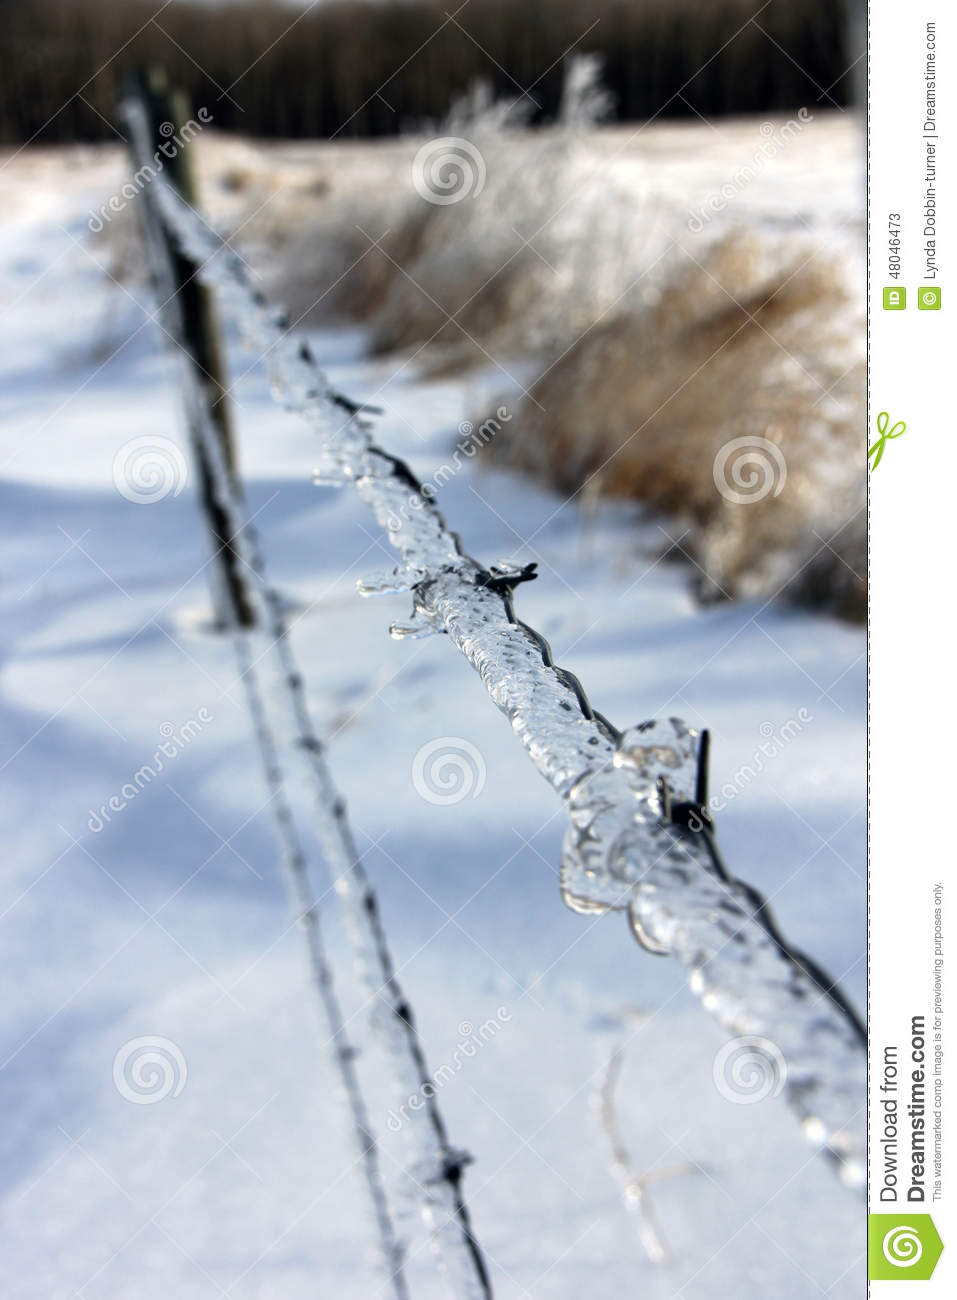 Ice On Barbed Wire After The Storm Stock Image - Image of icestorm ...